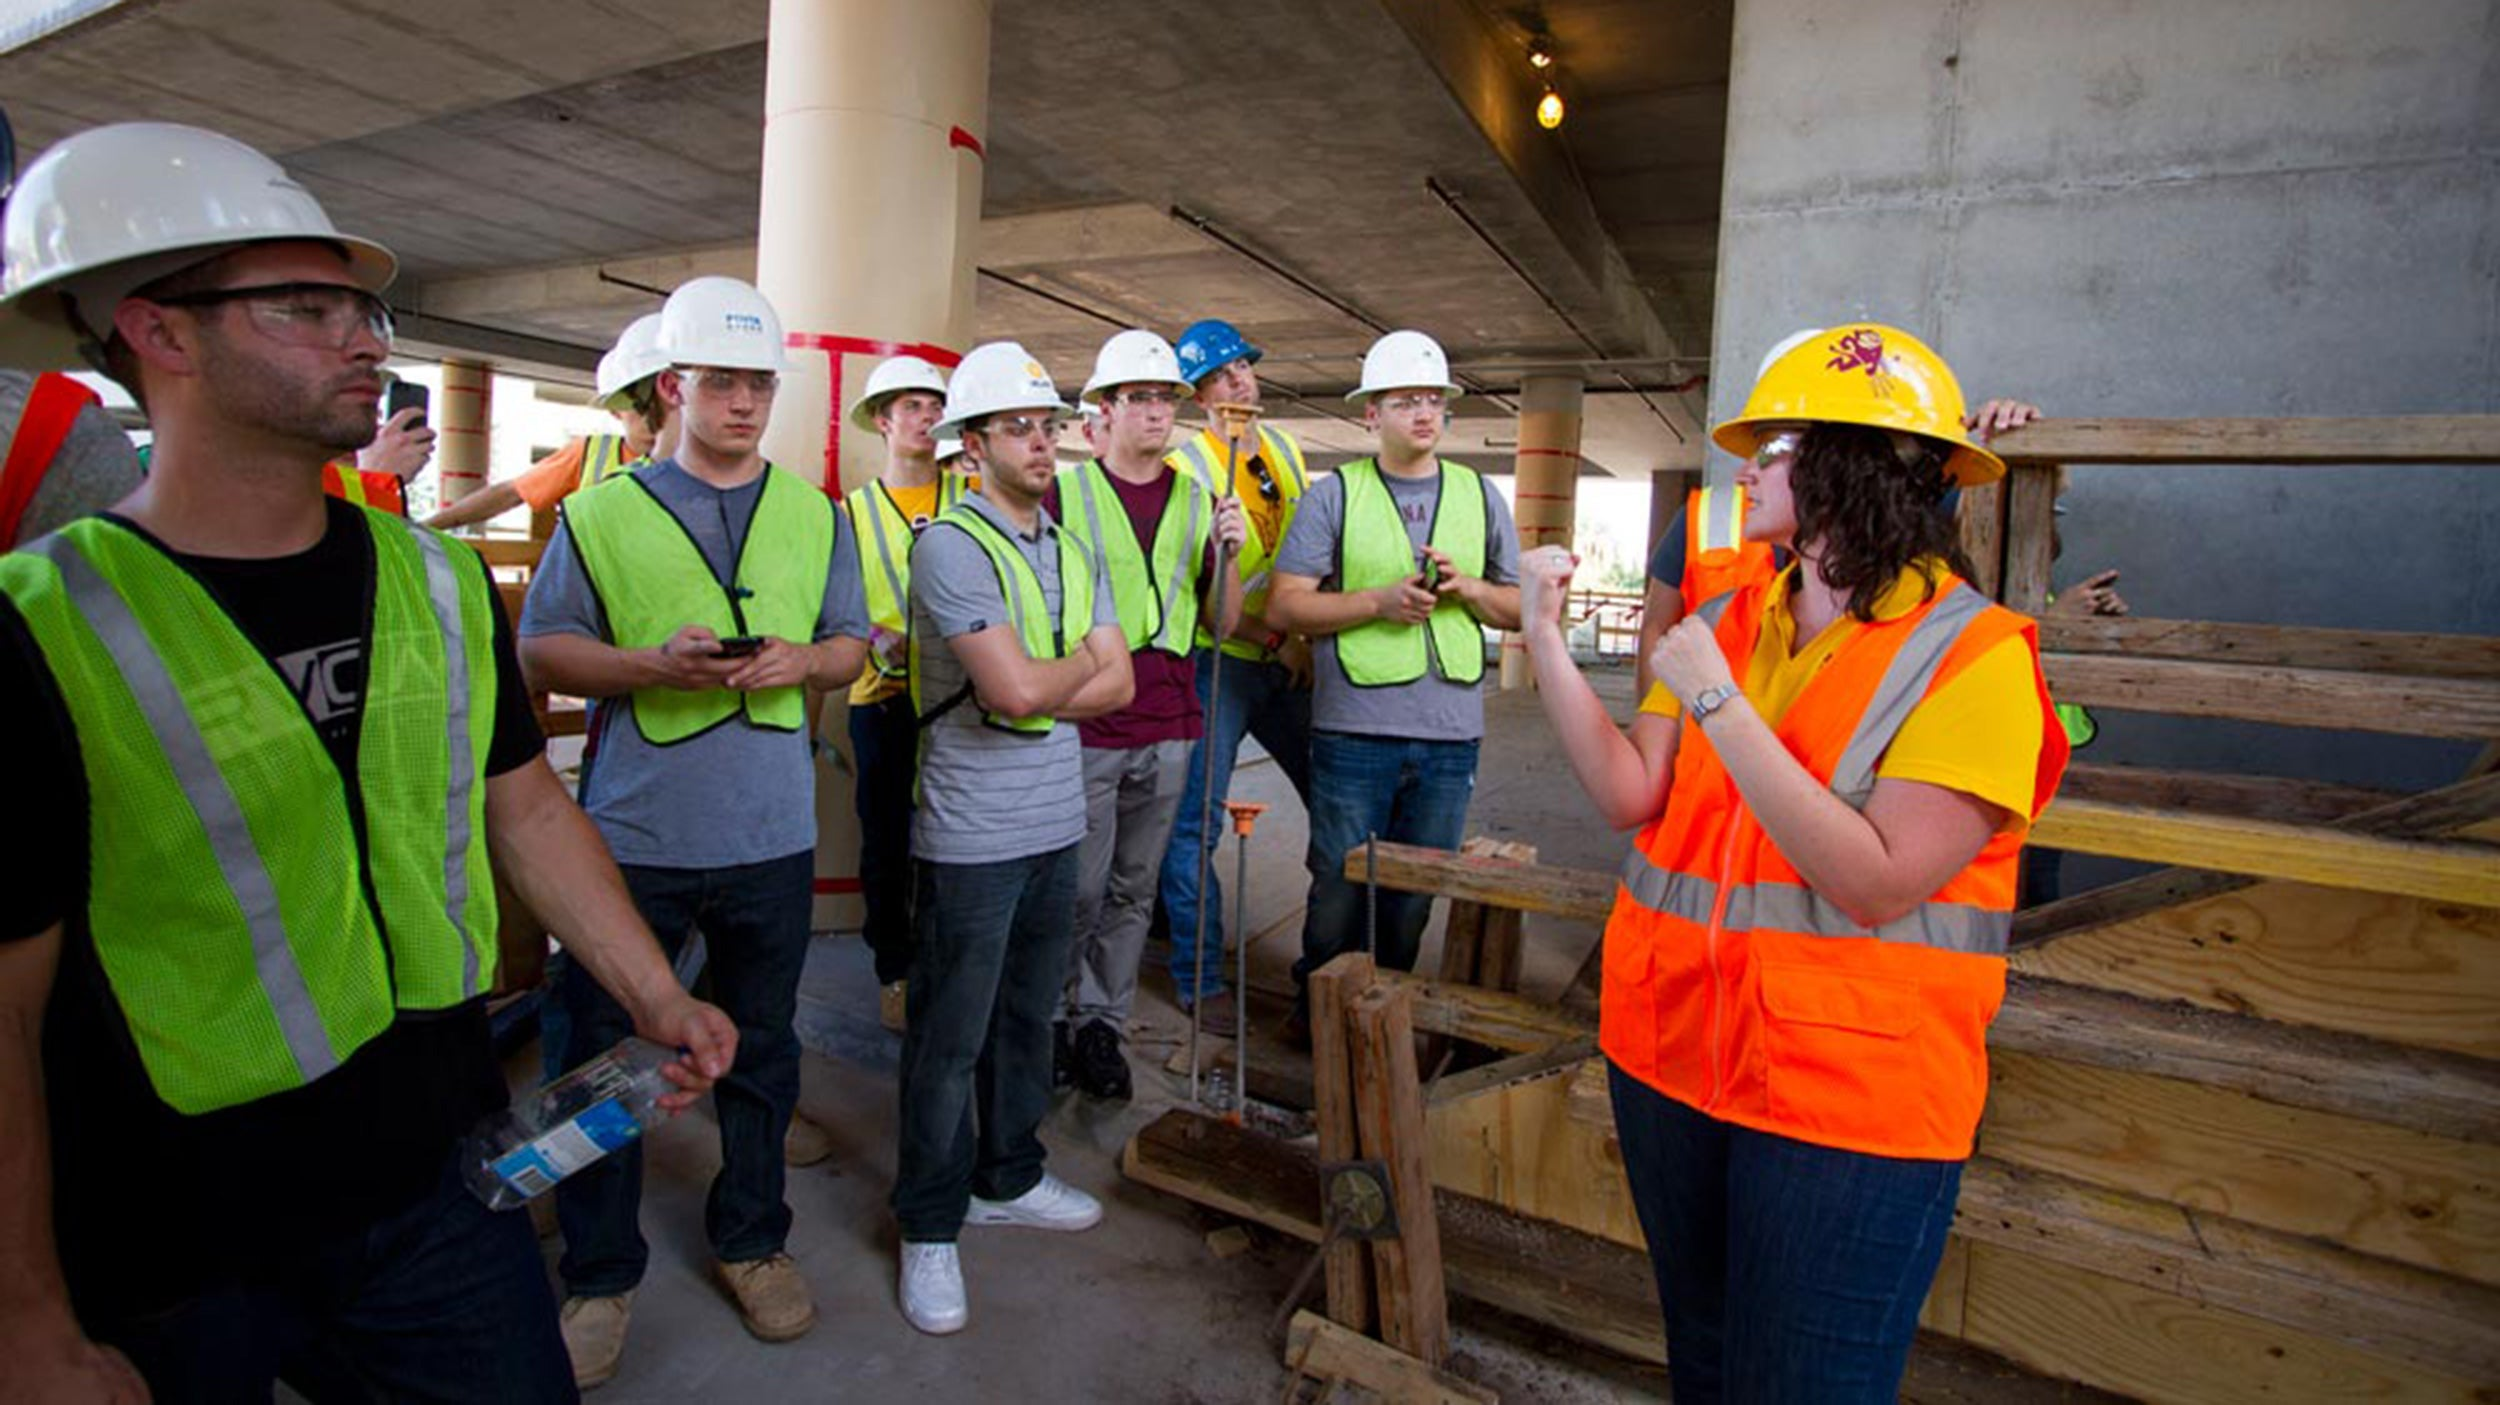 Kristen Parrish, graduate program chair for construction management, leads a group of students at the CAVC construction site